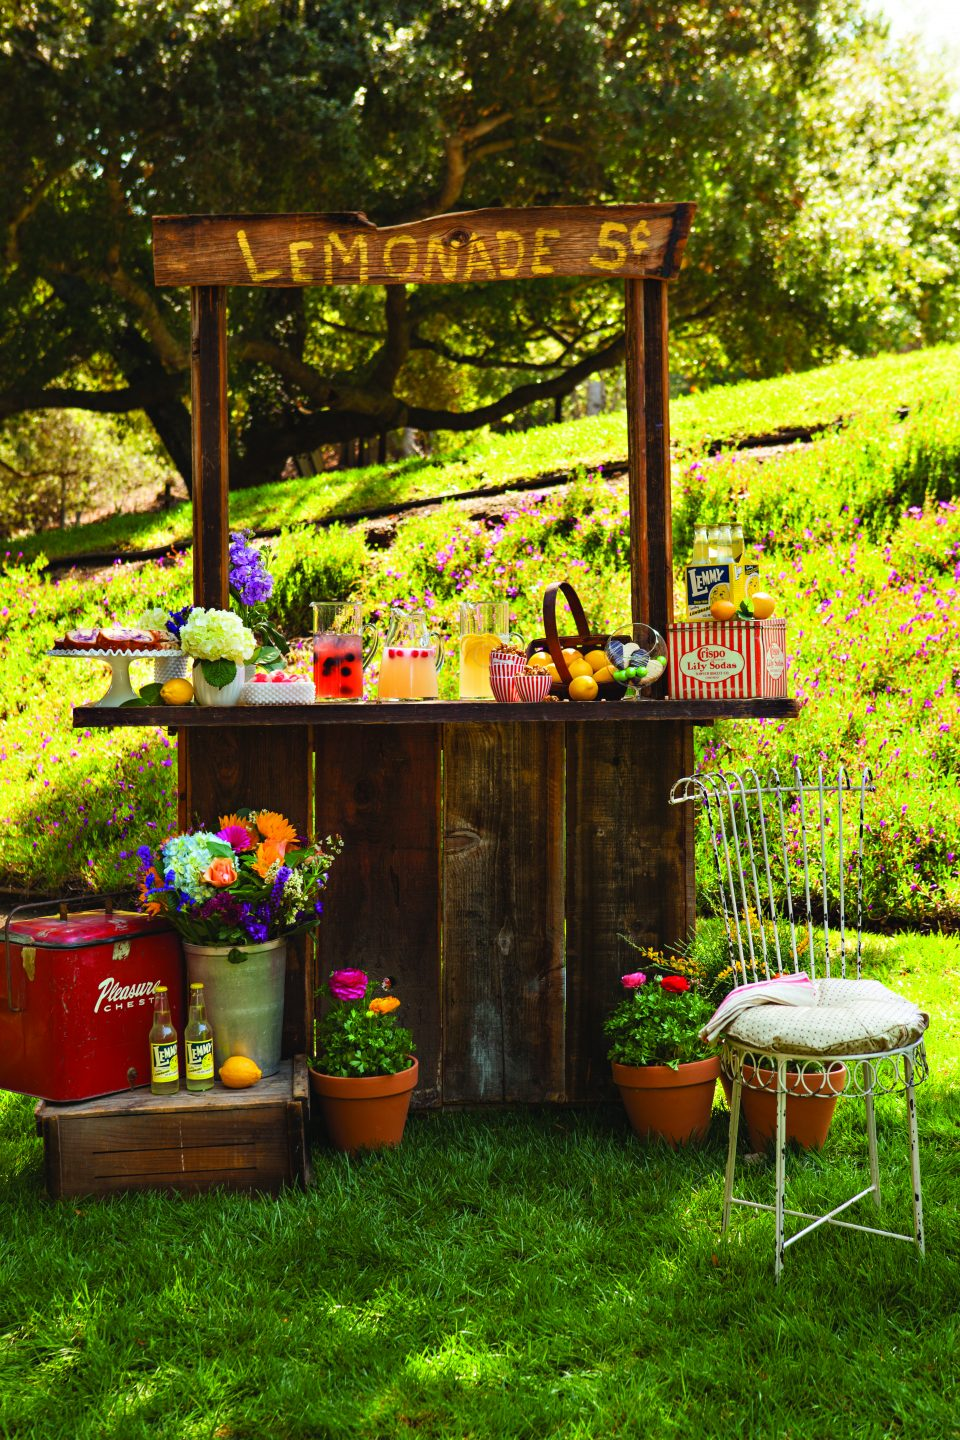 LemonadeStand - Cottage style decorating, renovating and